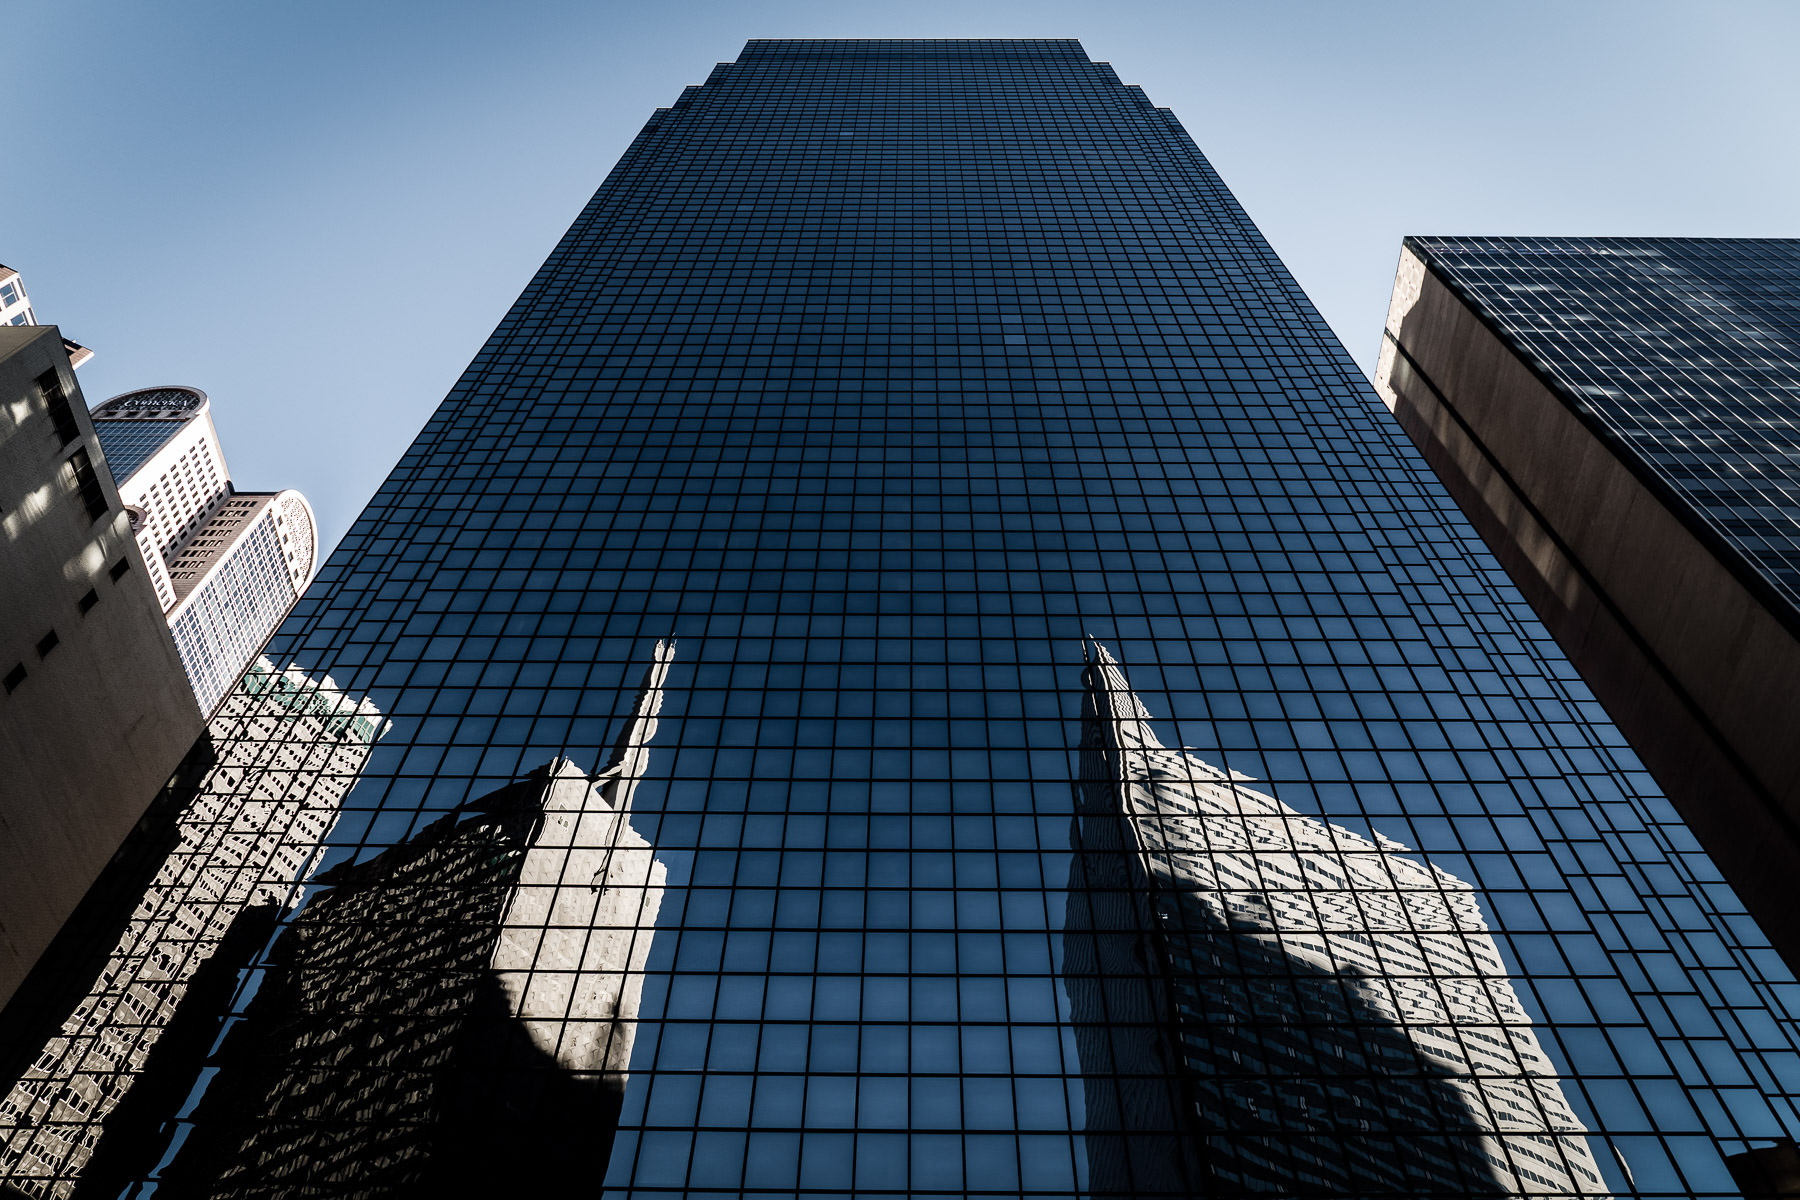 Downtown Dallas' Republic Gables Tower and Energy Plaza are reflected in the glass facade of the adjacent Thanksgiving Tower.